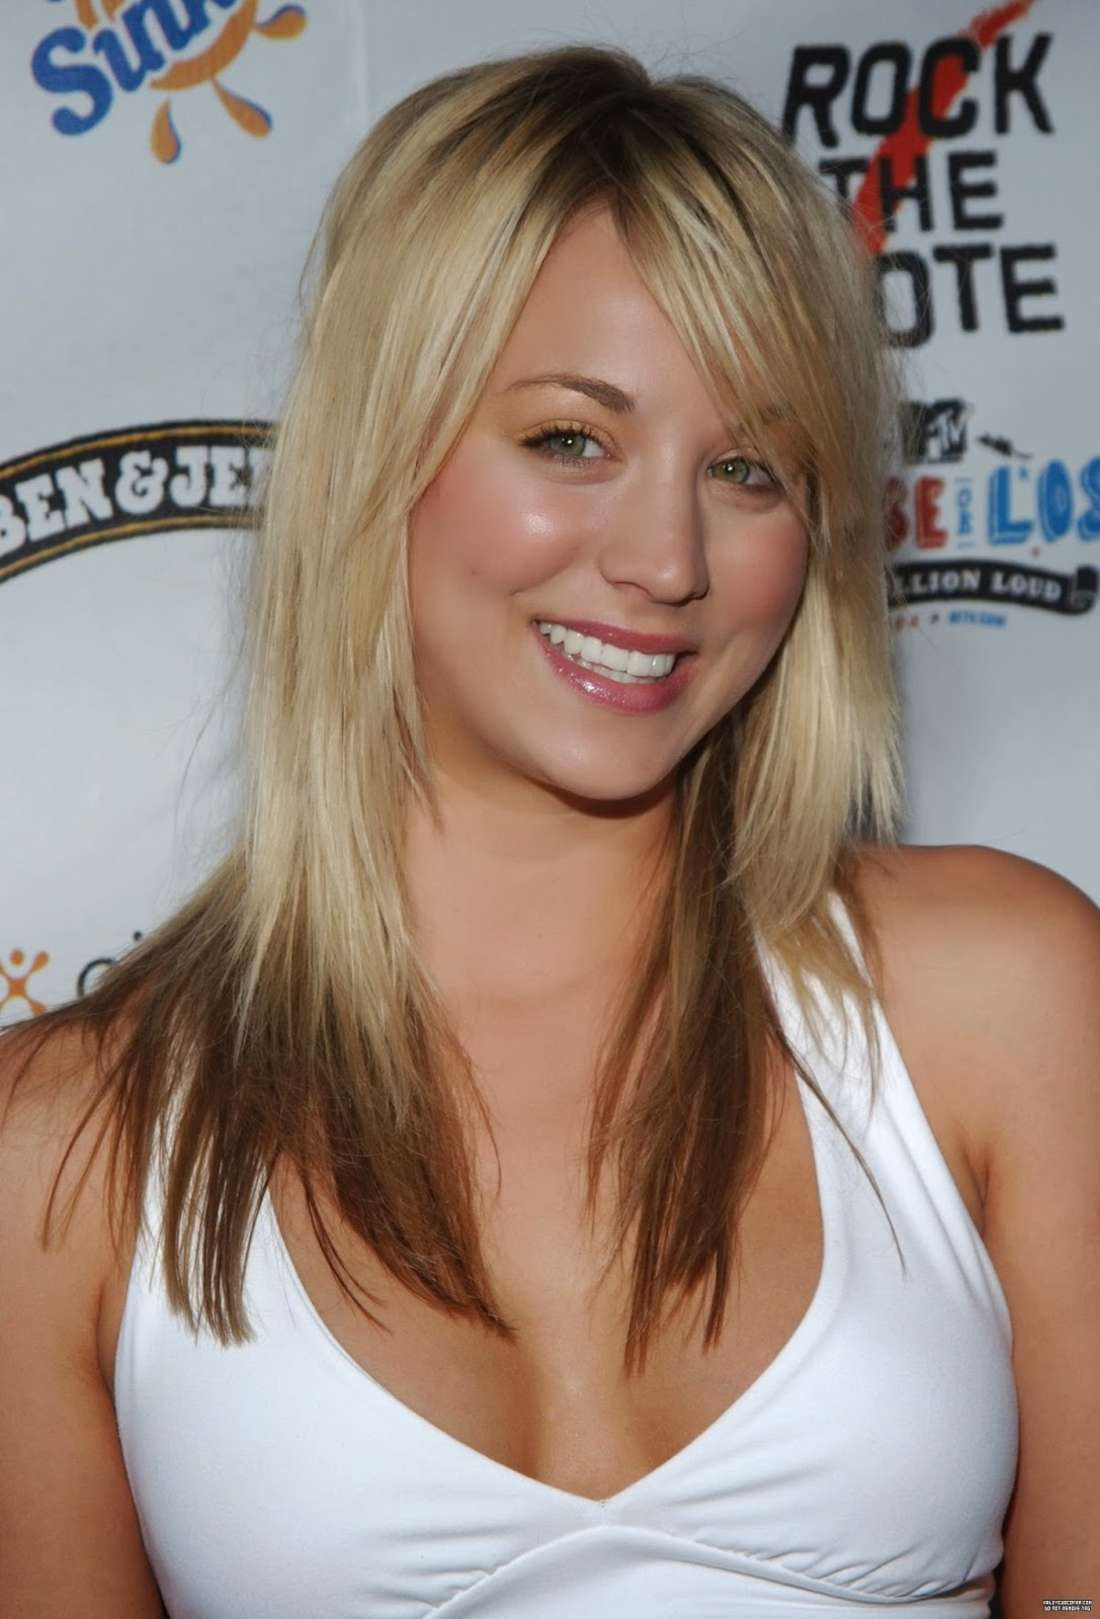 Kaley Cuoco 2016 : Kaley Cuoco: Rock The Vote National Bus Tour Concert 2004 -36